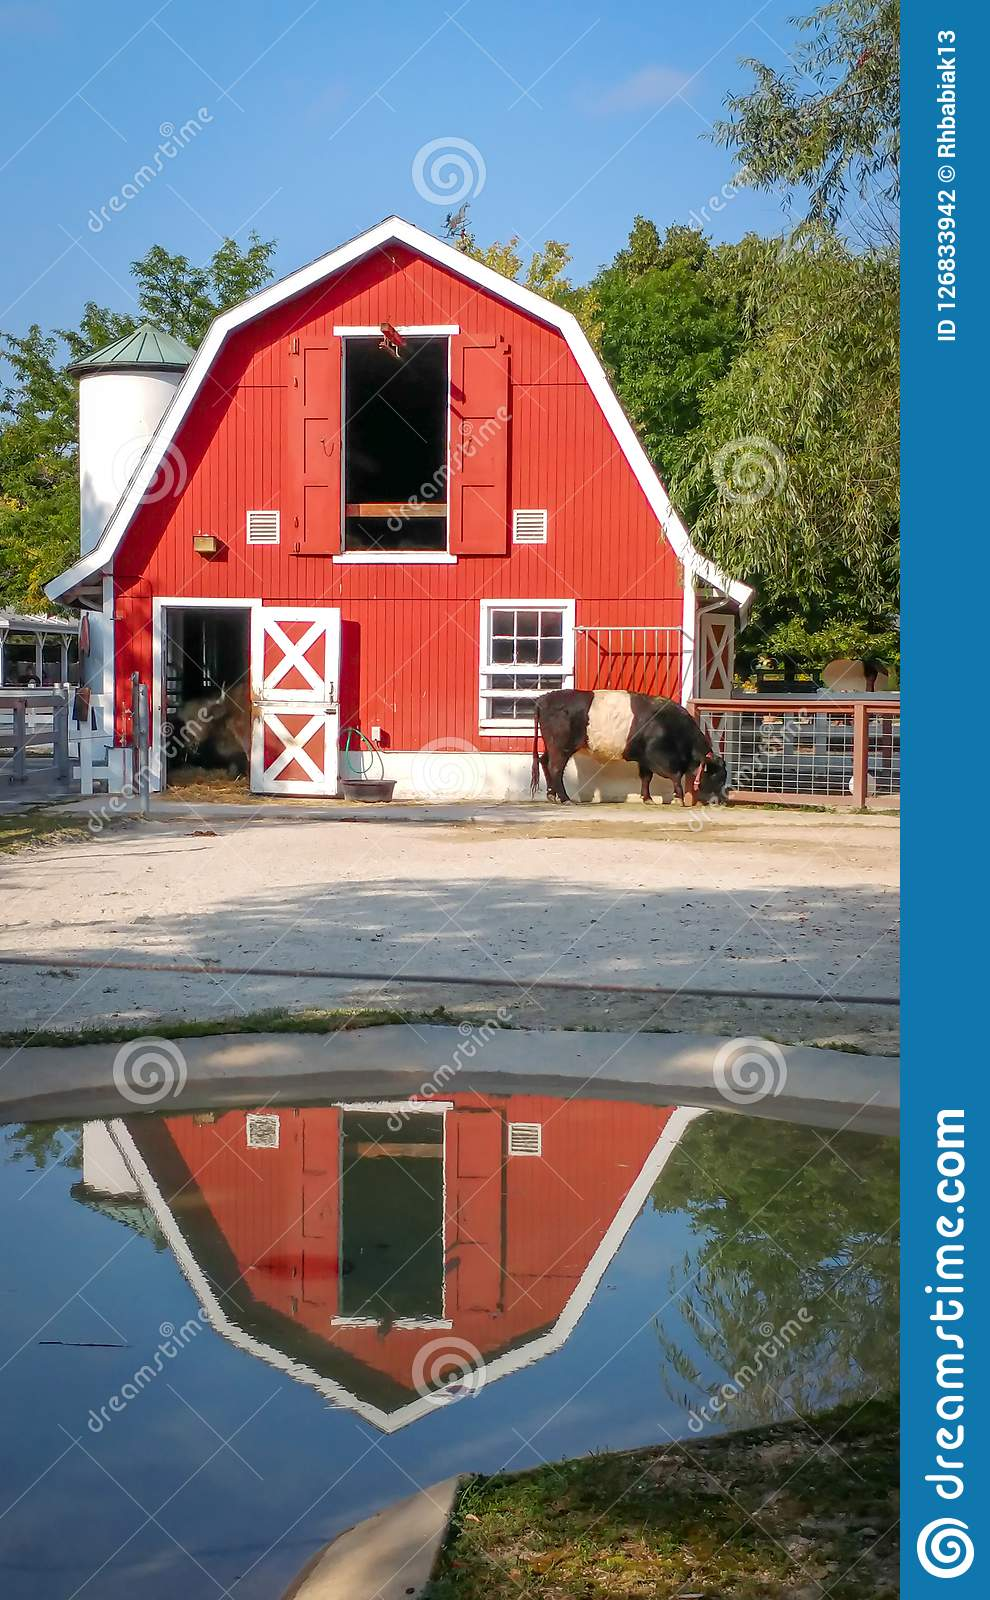 Red Barn Reflected in Rain Puddle